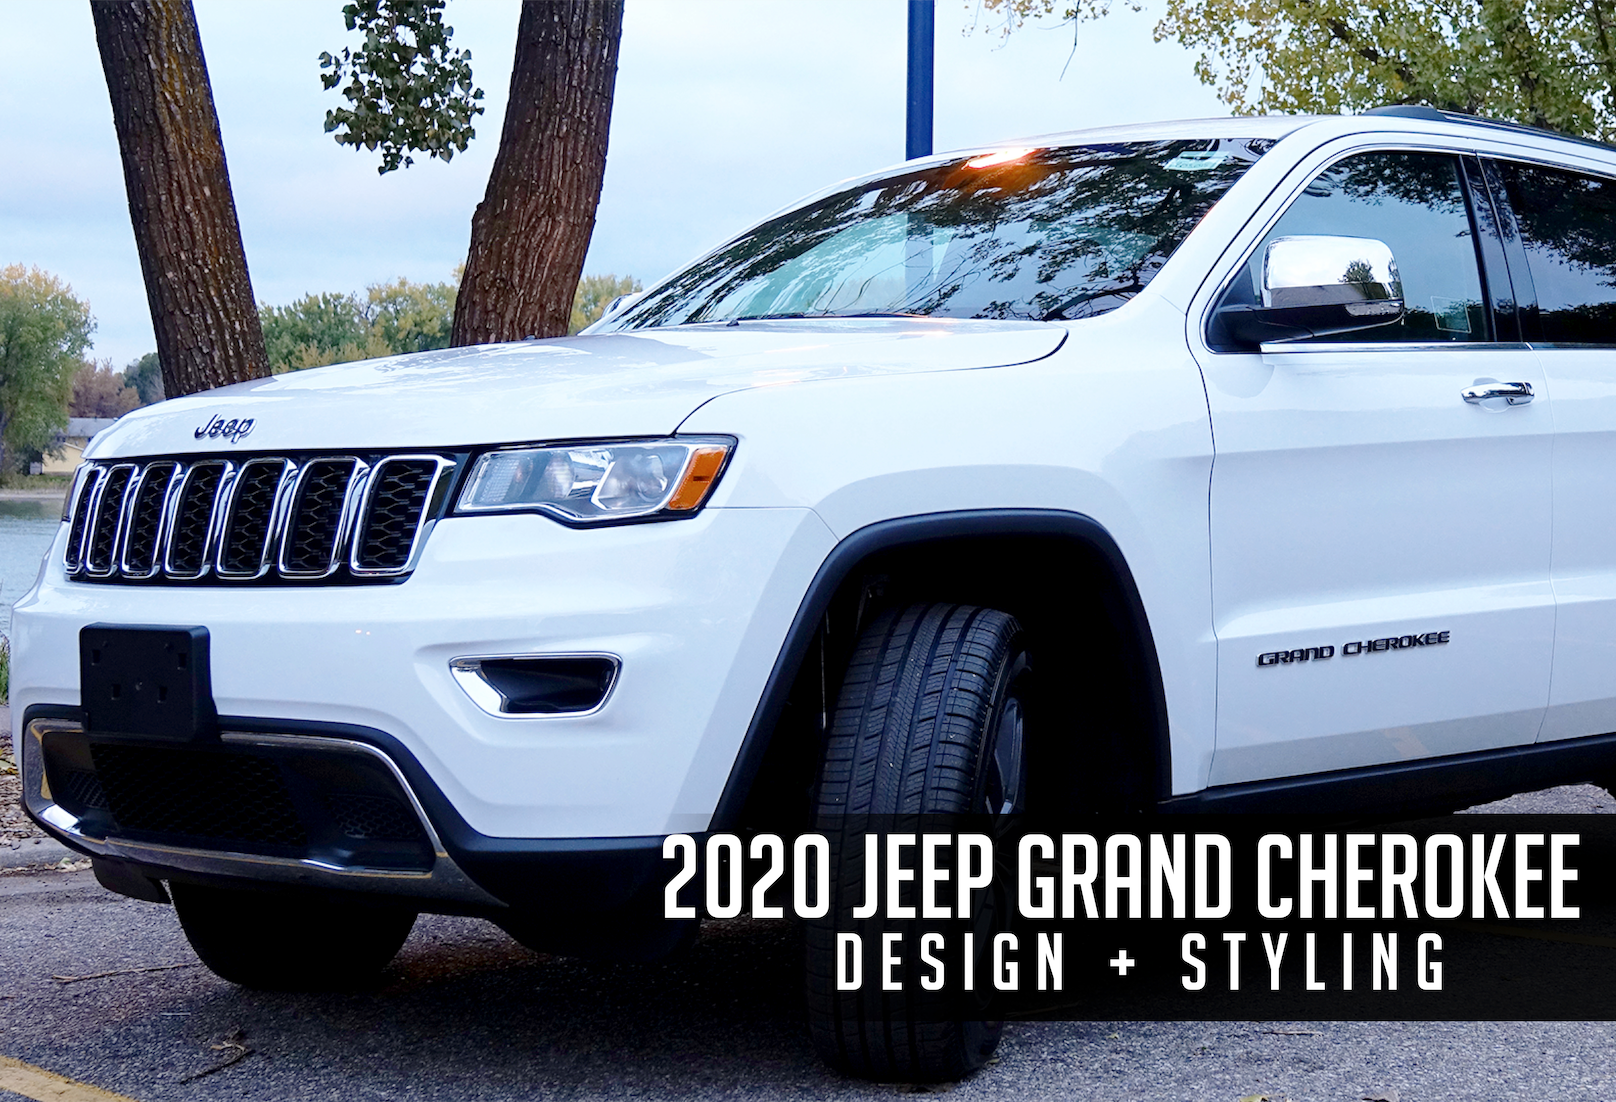 the 2020 Jeep Grand Cherokee in Pine City